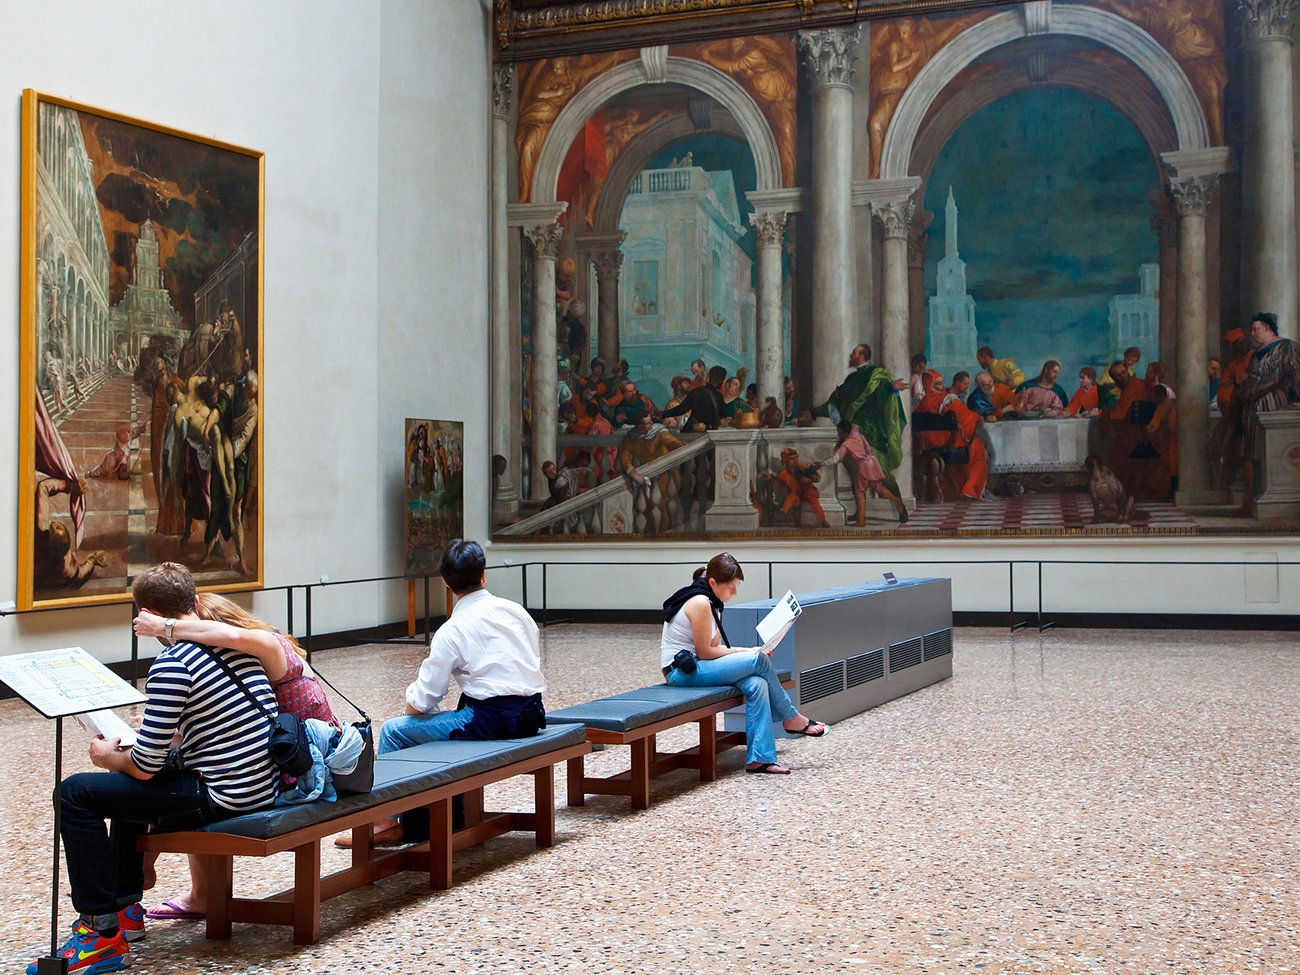 Galleria dell'Accademia Gallery in Venice